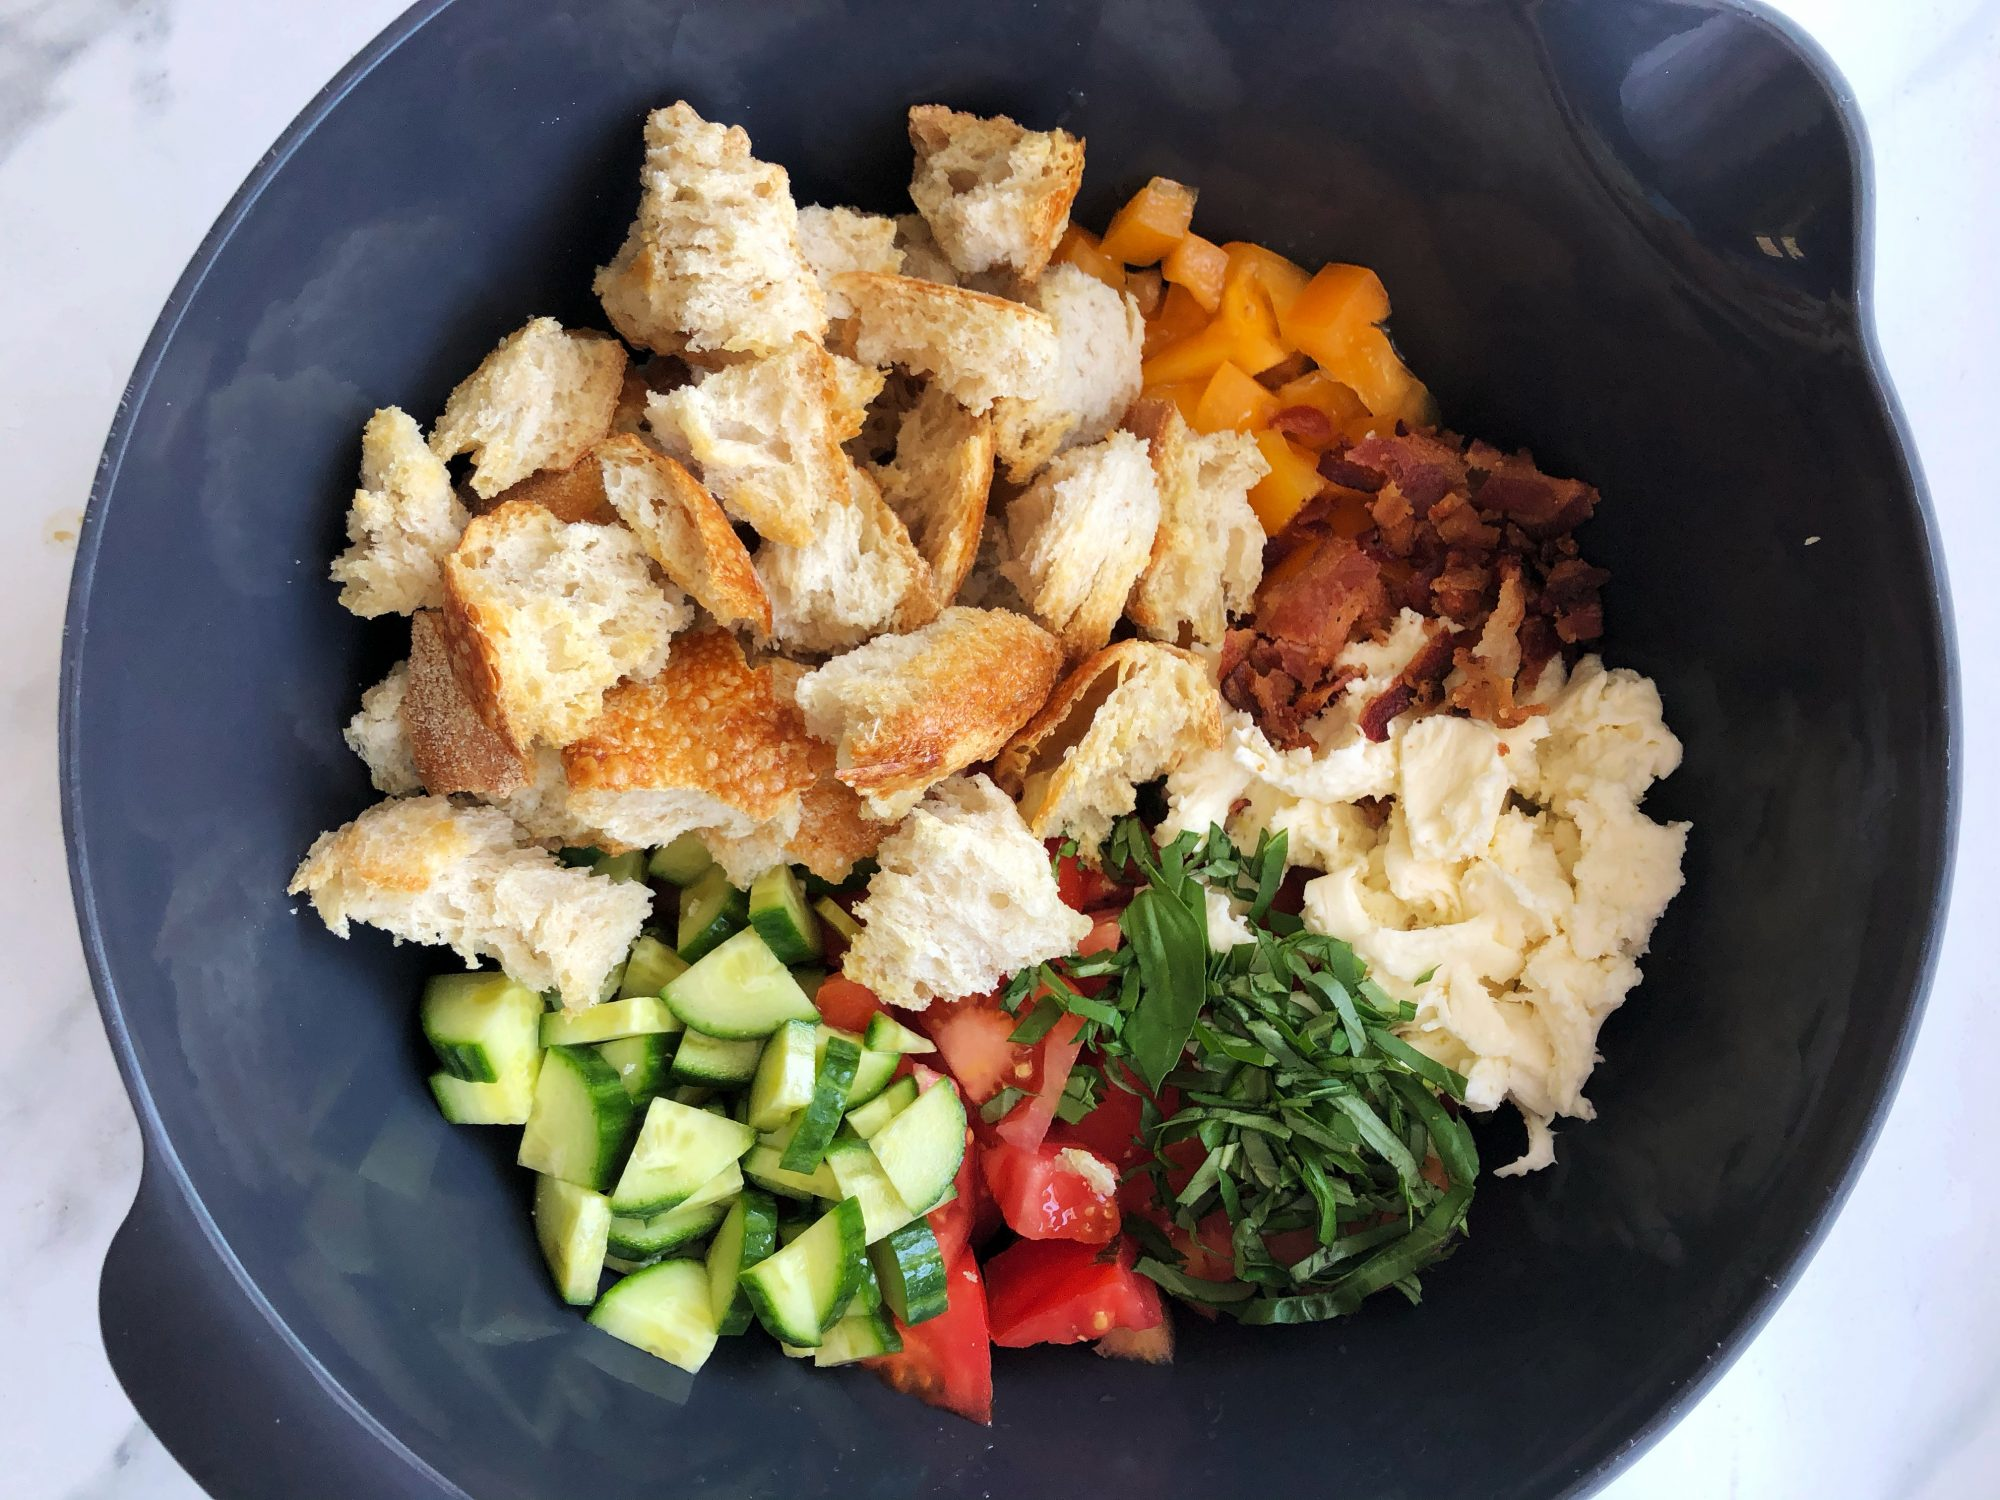 panzanella ingredients in a mixing bowl